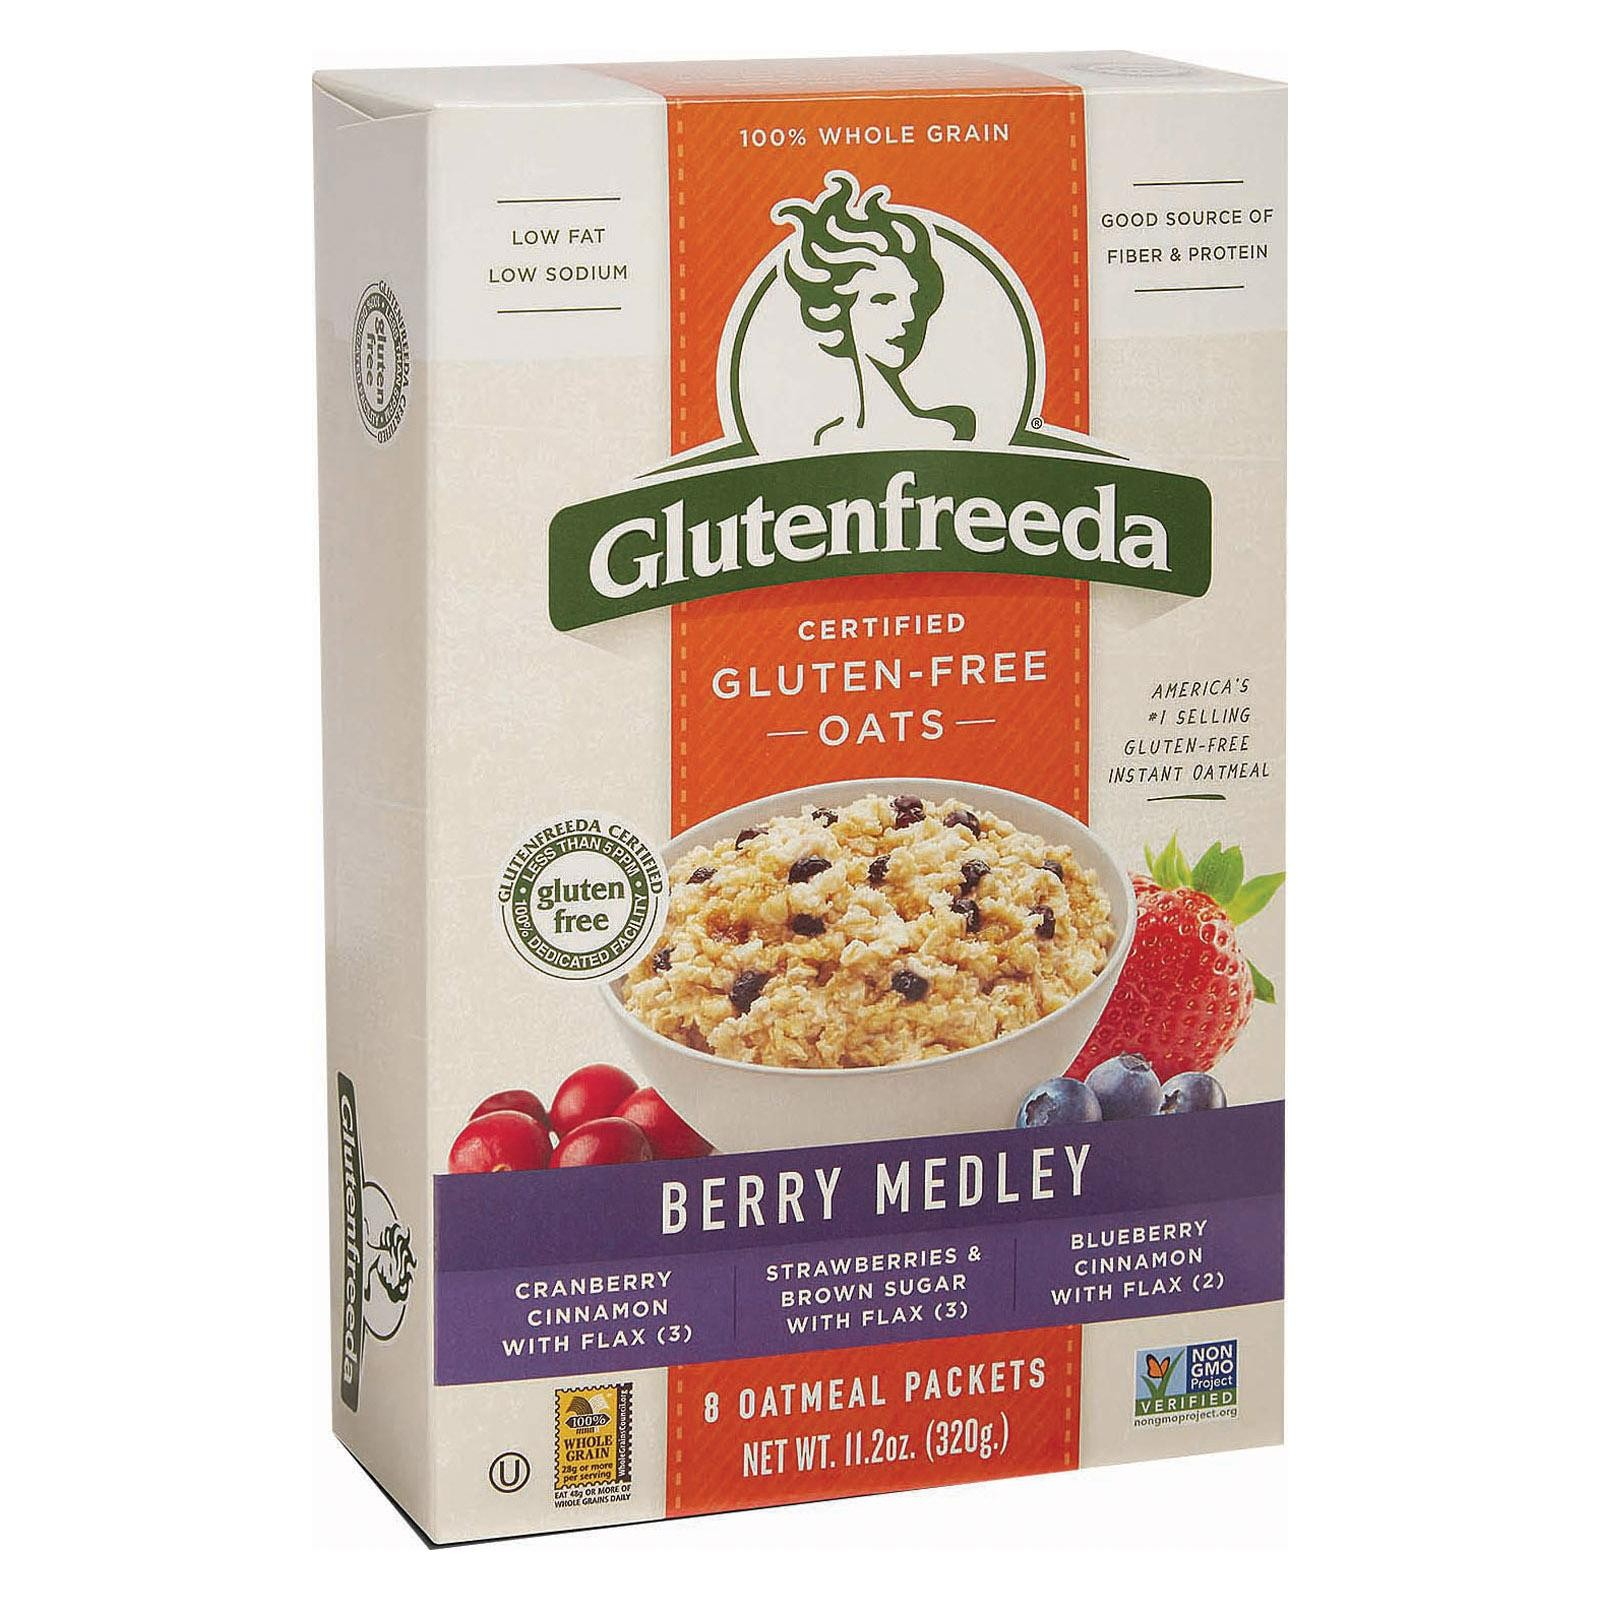 Gluten Freeda Instant Oatmeal Cup - Brown Sugar And Flax - pack of 8 - 11.2 Oz.